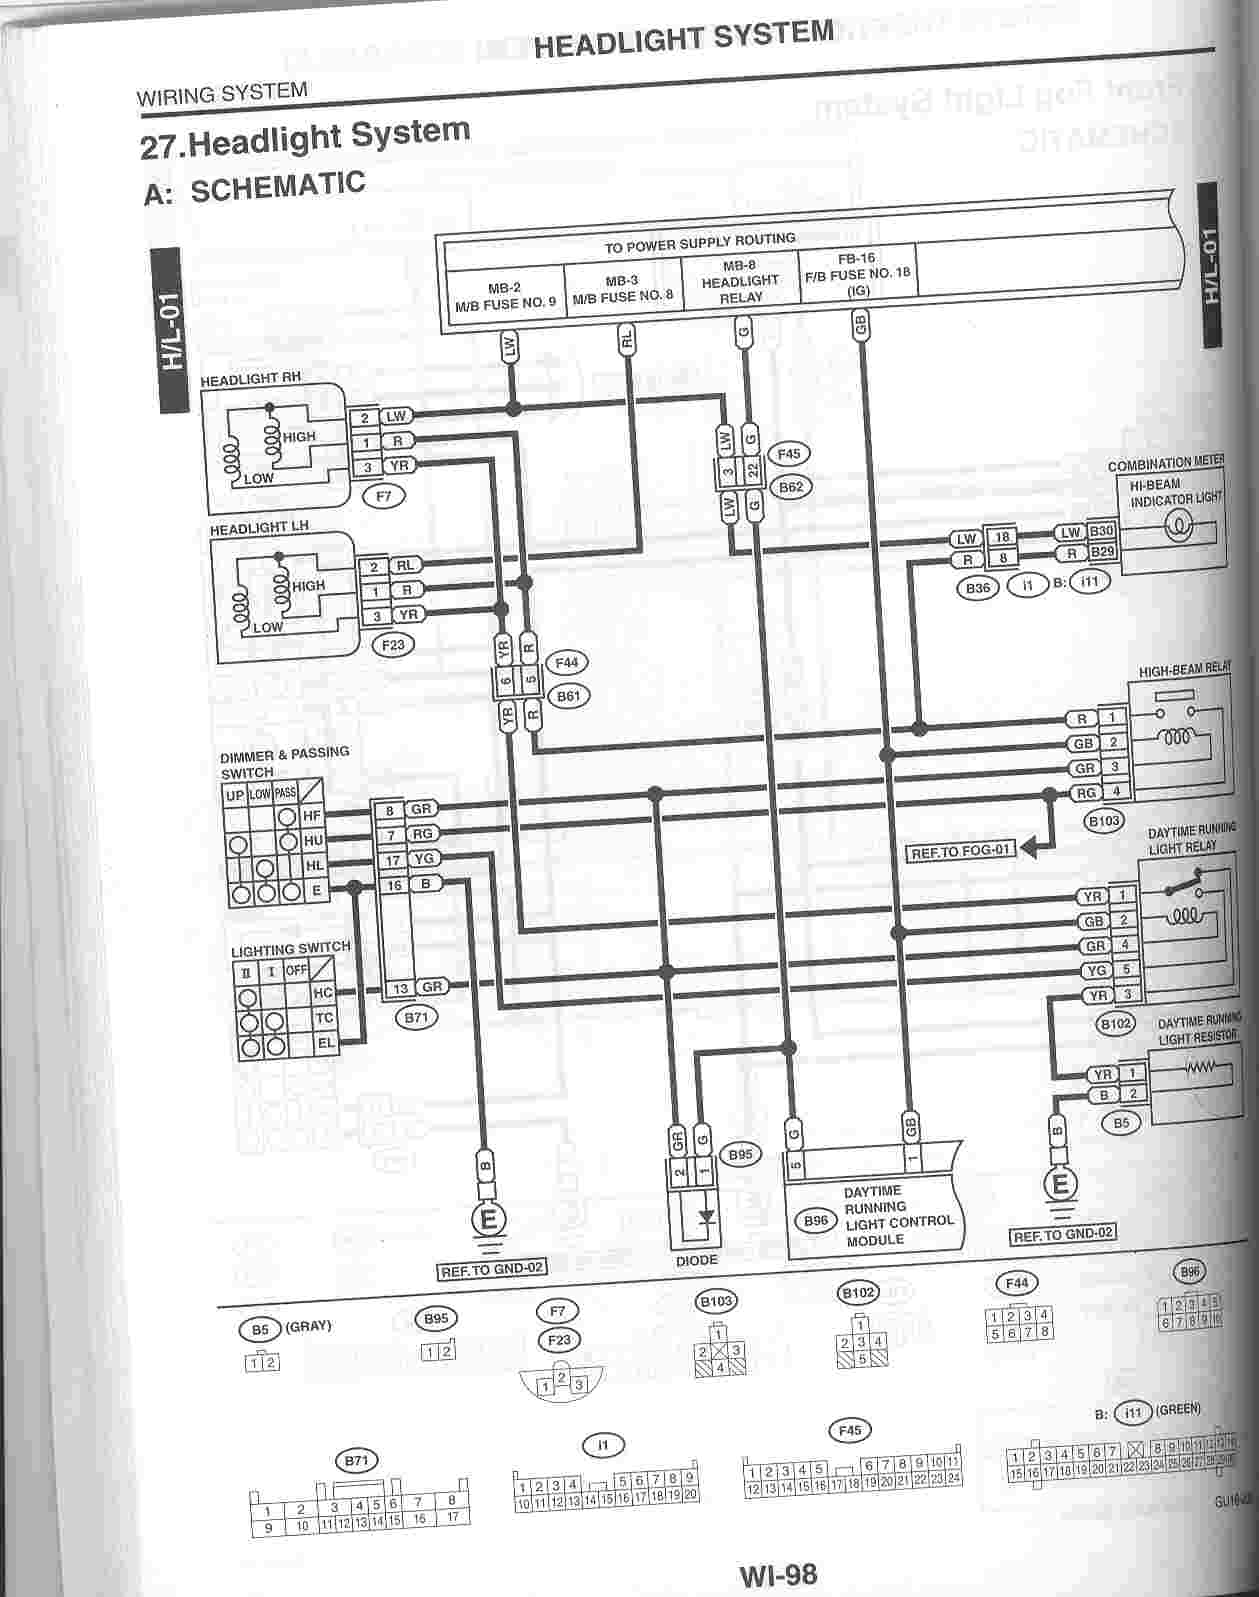 110v Relay Wiring Diagram Manual Guide